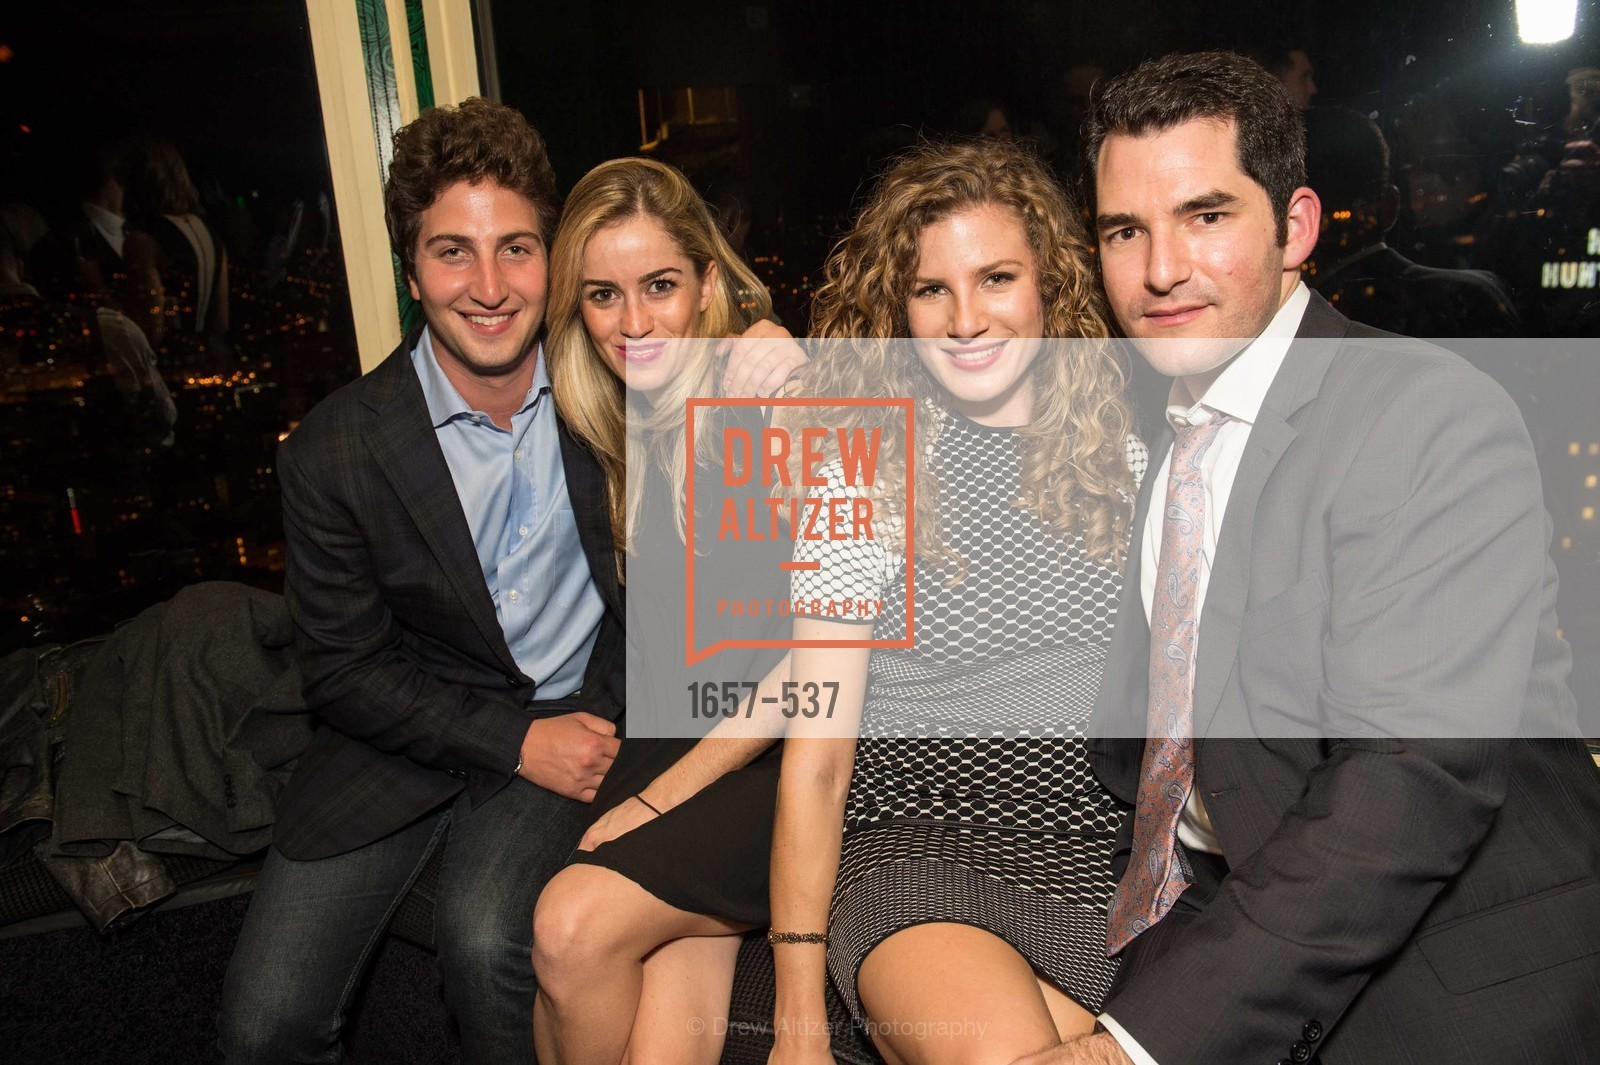 Matthew Goldman, Adriana Volocsky, Sam Aperbach, TOP OF THE MARK'S 75TH Anniversary Party, US, November 7th, 2014,Drew Altizer, Drew Altizer Photography, full-service agency, private events, San Francisco photographer, photographer california